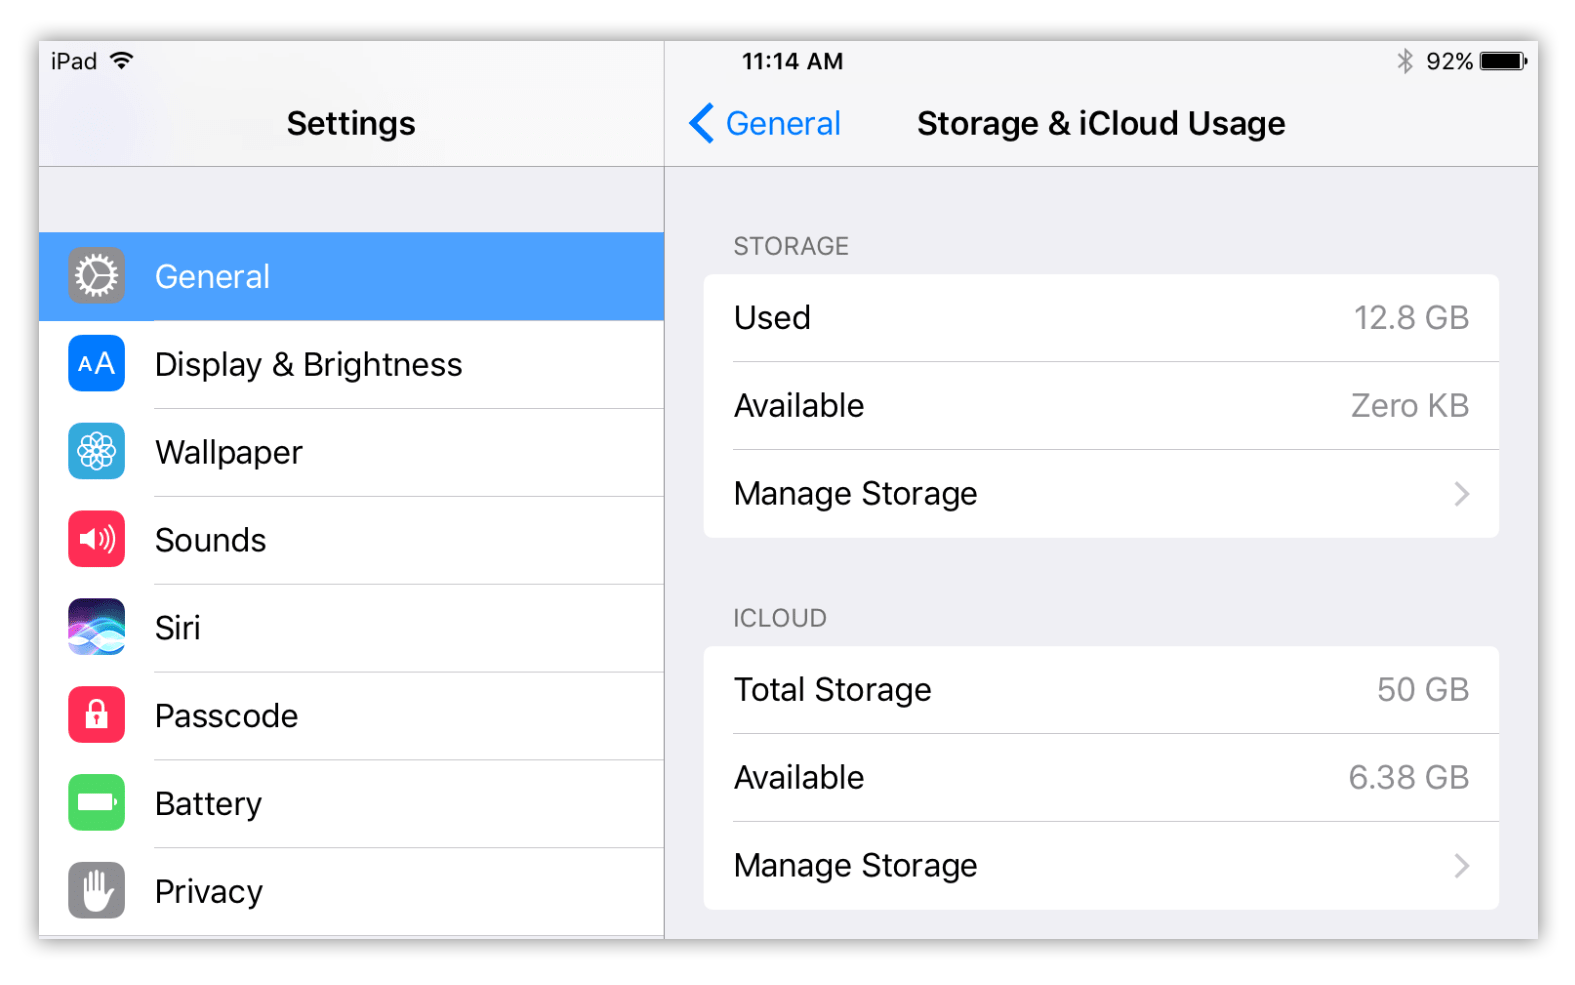 Storage and iCloud usage settings